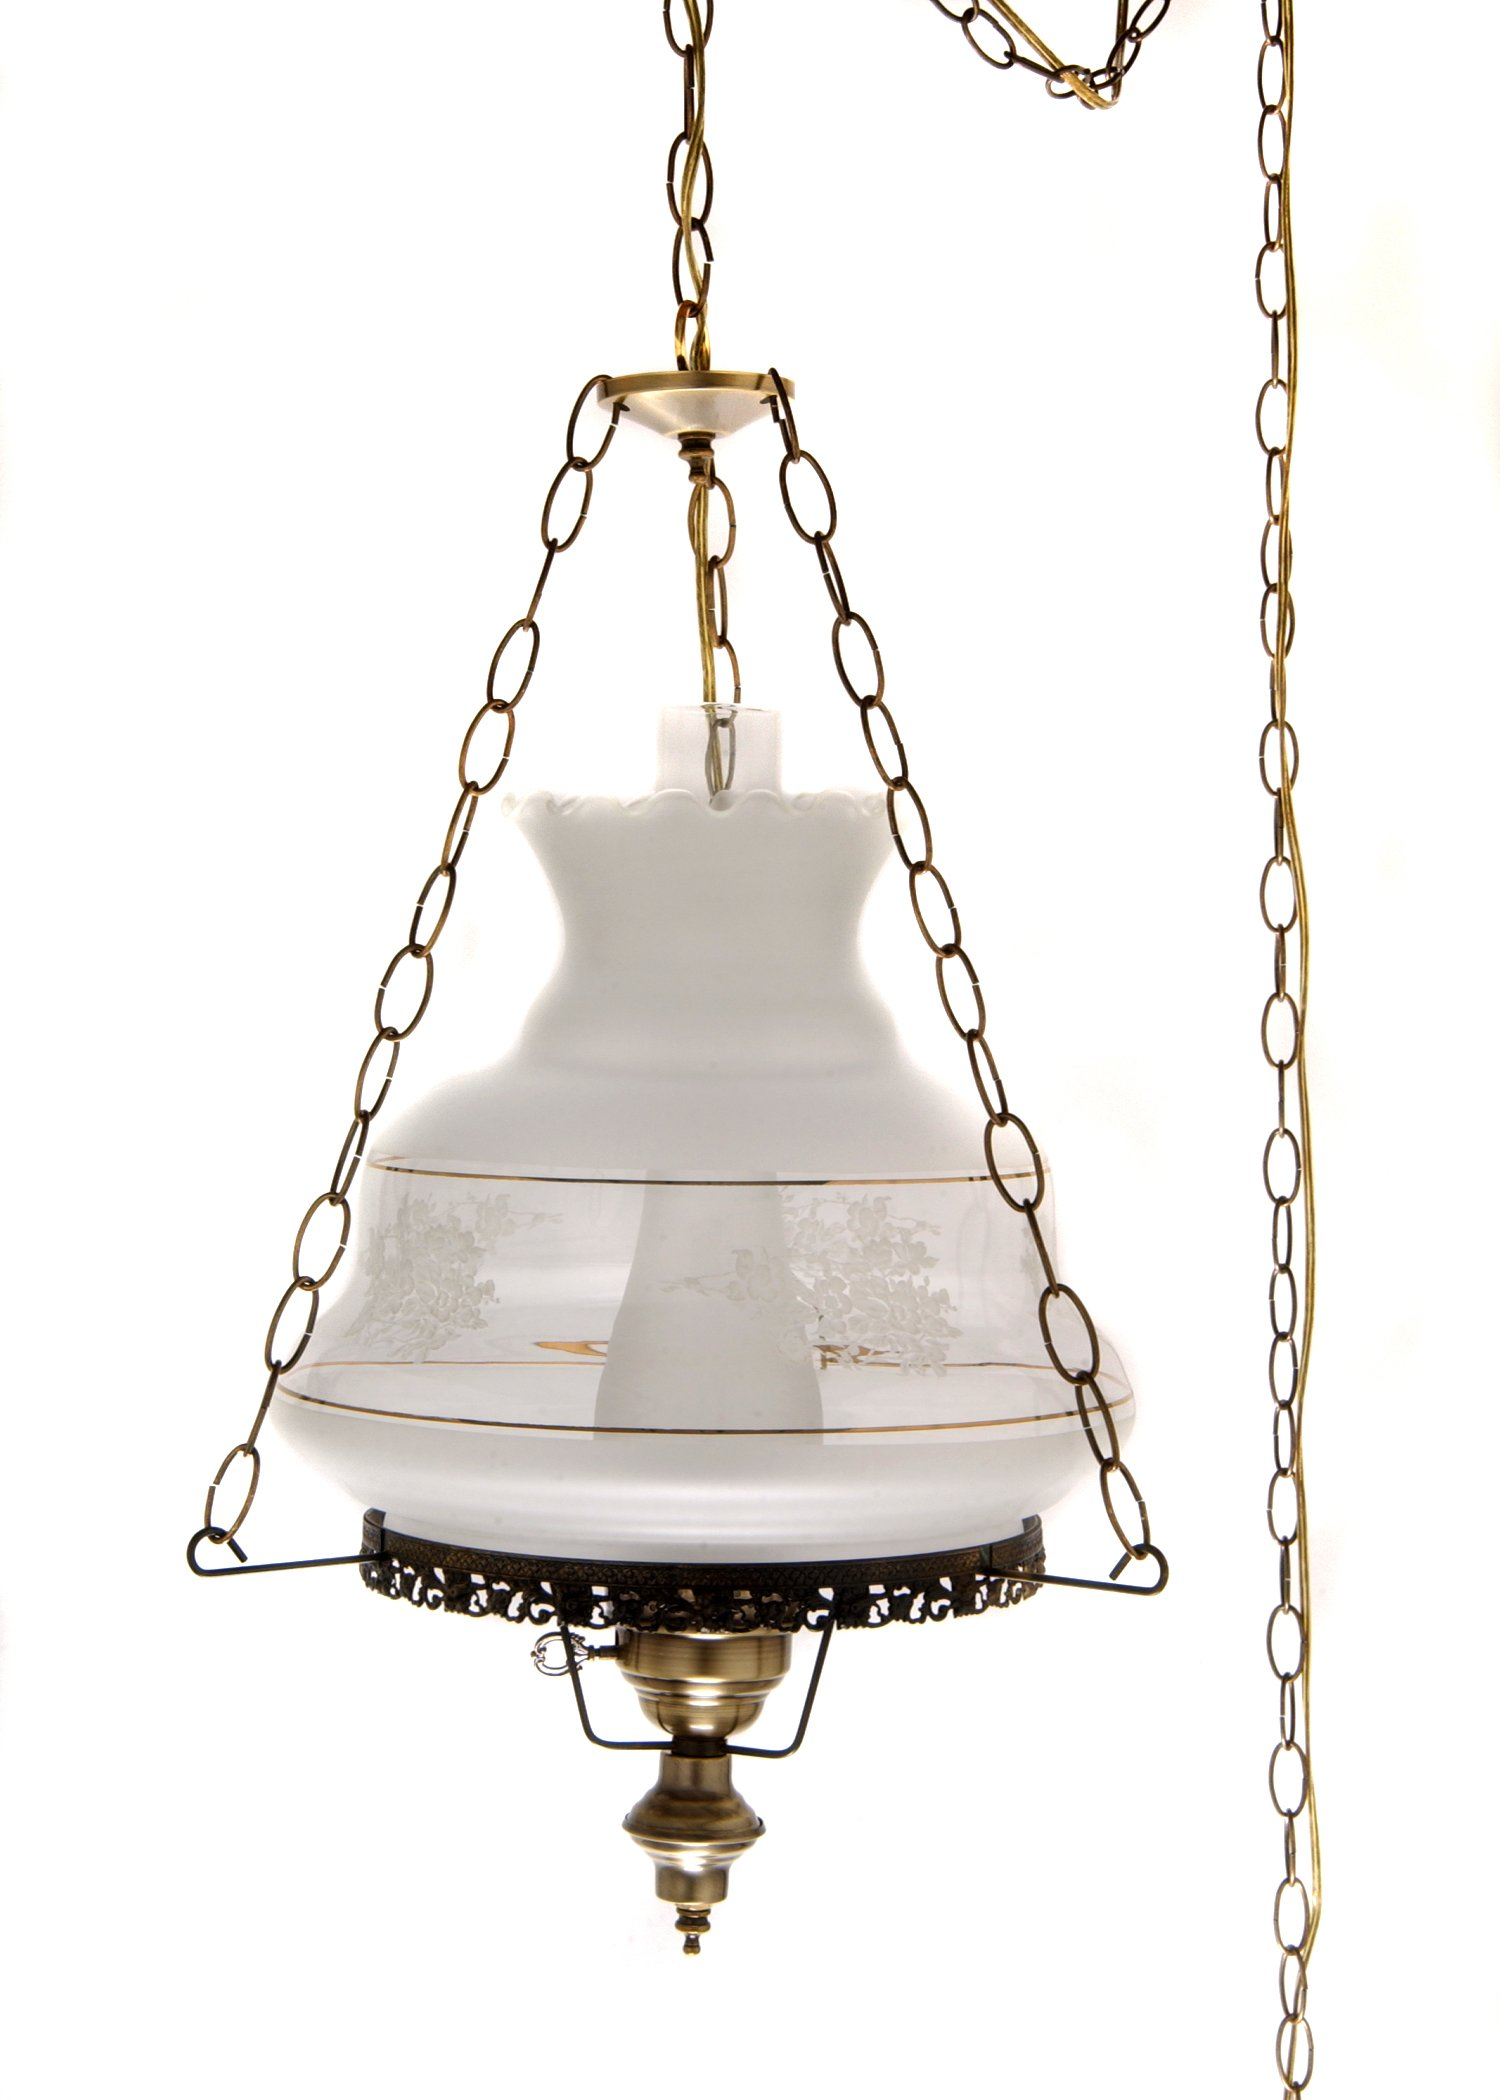 27 in. Victoria's Window Hurricane Pendant Lamp 14 in. Shade